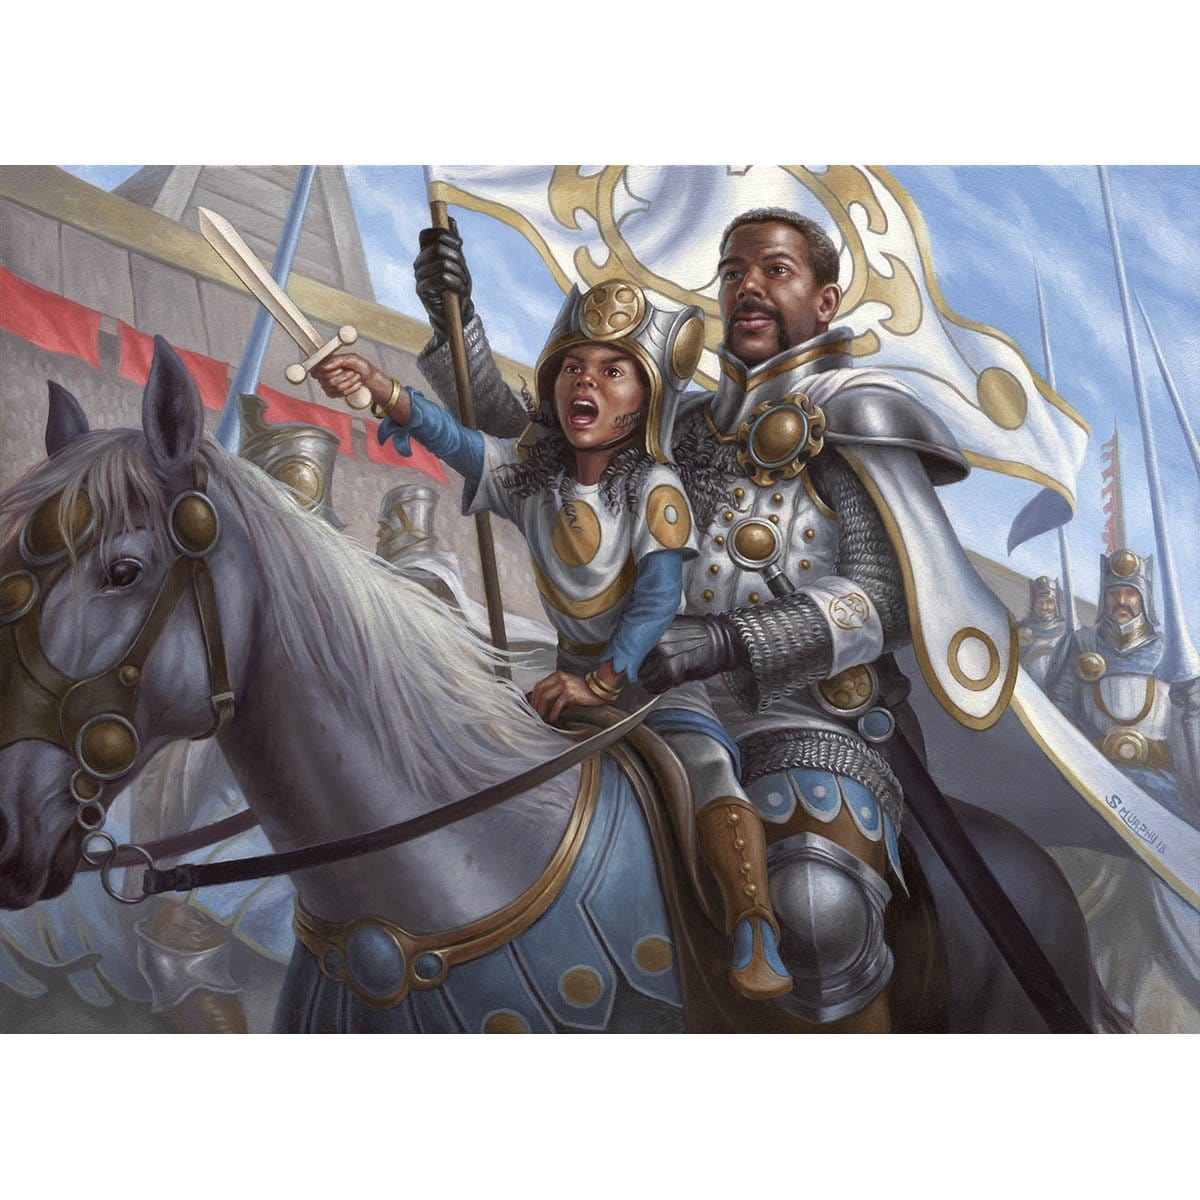 Inspiring Veteran Print - Print - Original Magic Art - Accessories for Magic the Gathering and other card games